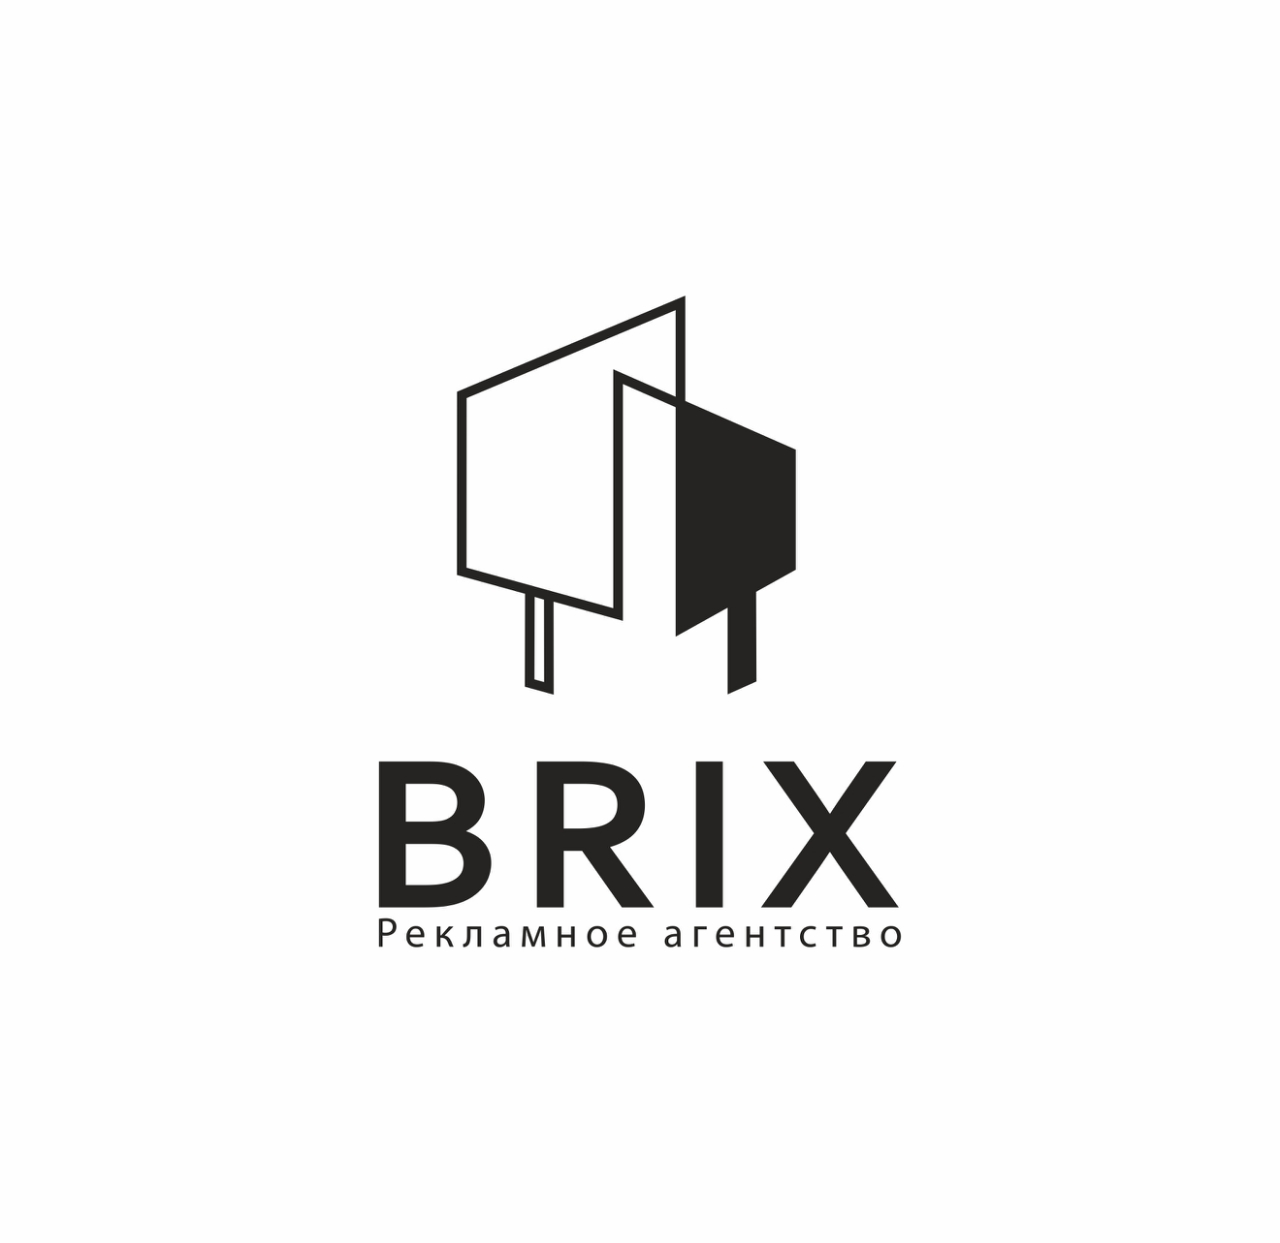 http://brix.ck.ua/themes/brix/assets/img/images/contacts.jpg